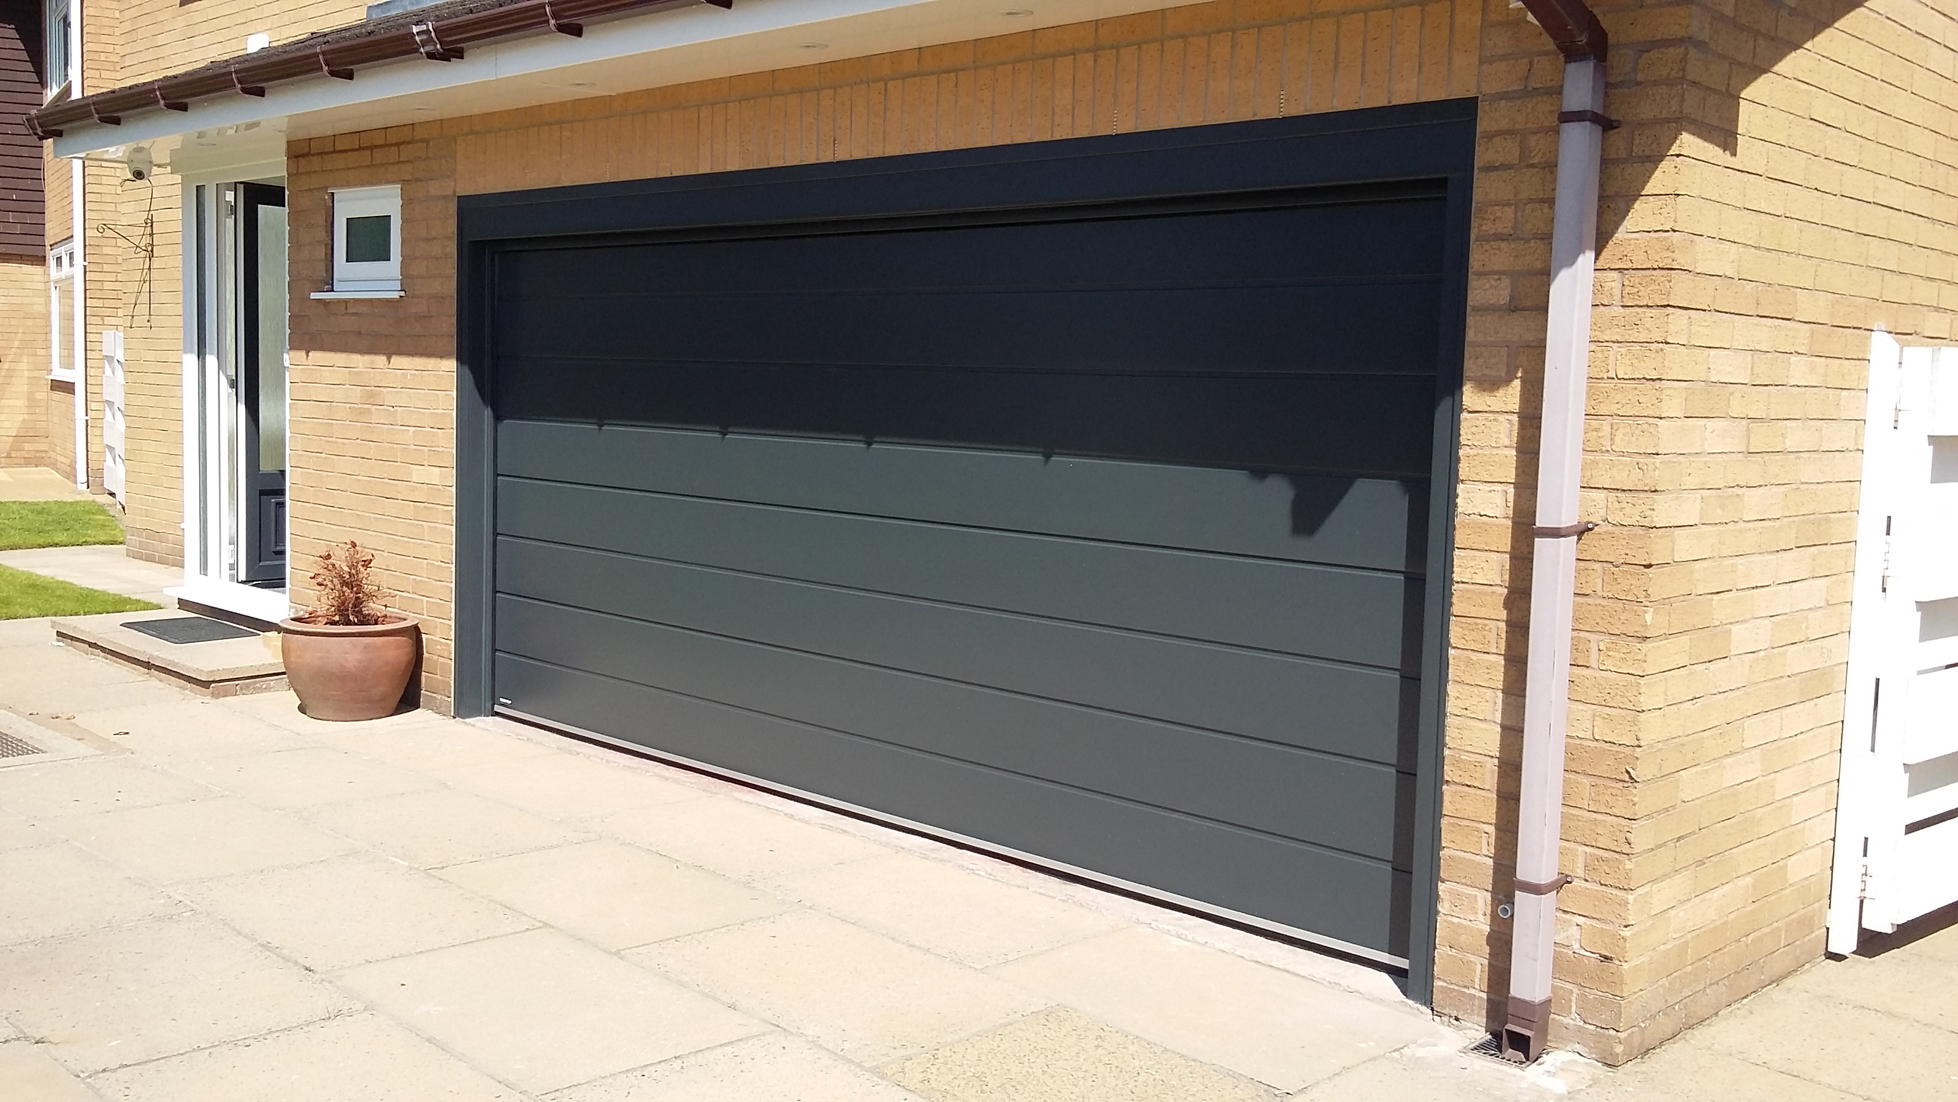 Teckentrup Sectional Door Northwich Pennine Garage Doors